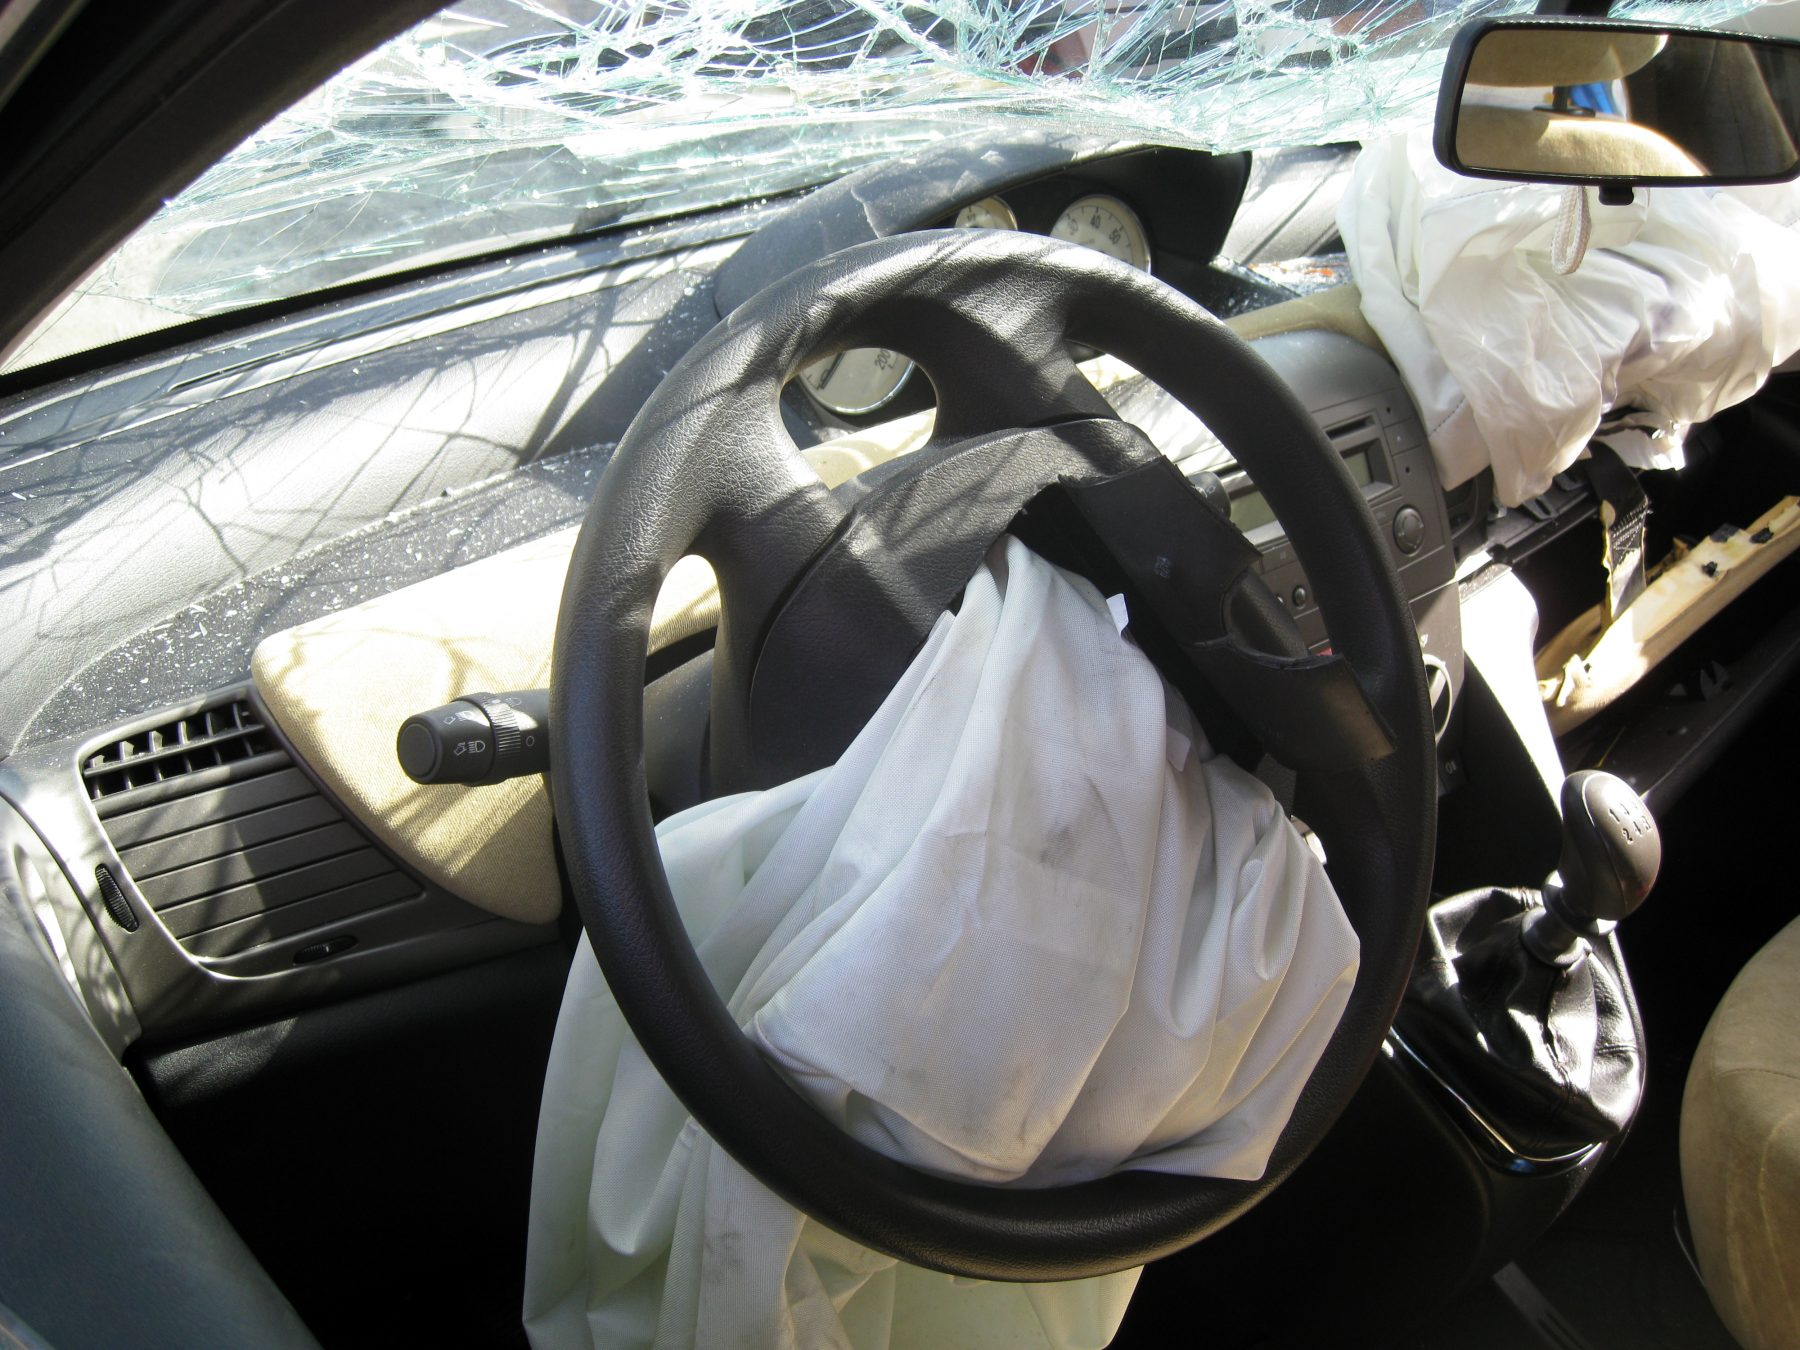 Are Airbags Safe?